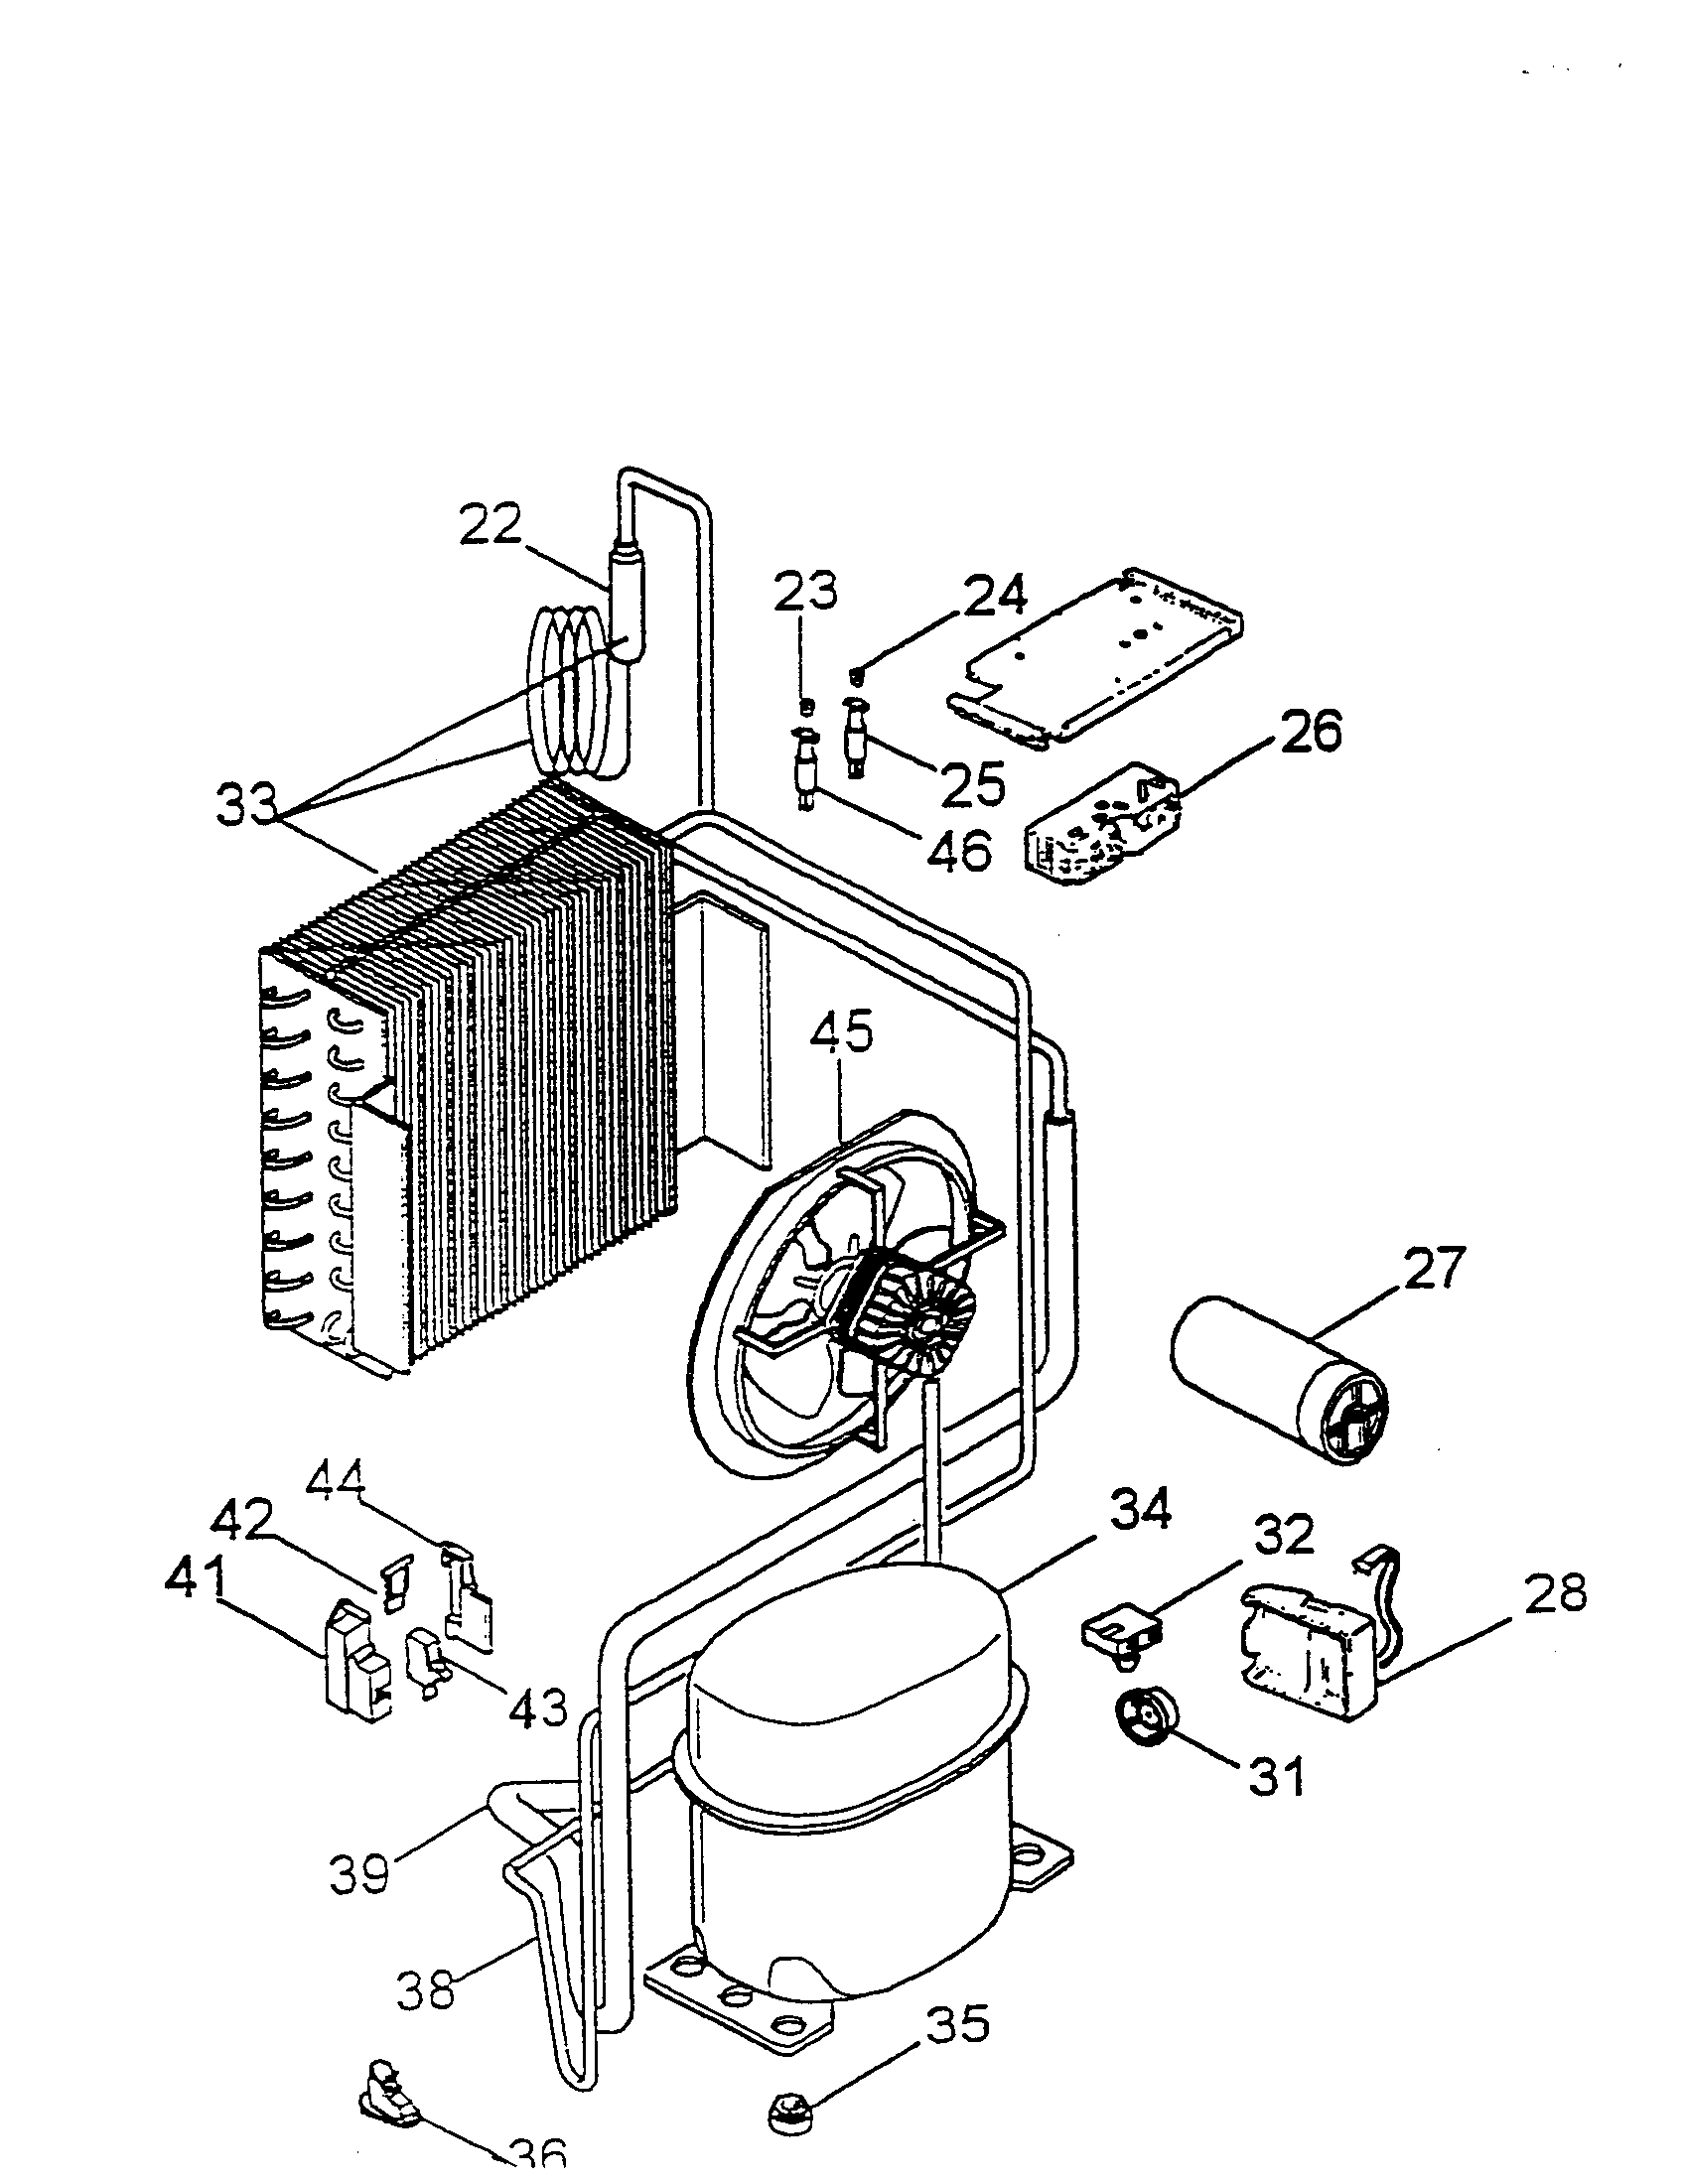 Wiring diagram for aprilaire 700 humidifier the wiring diagram p9090139 00002 wiring diagram for aprilaire 700